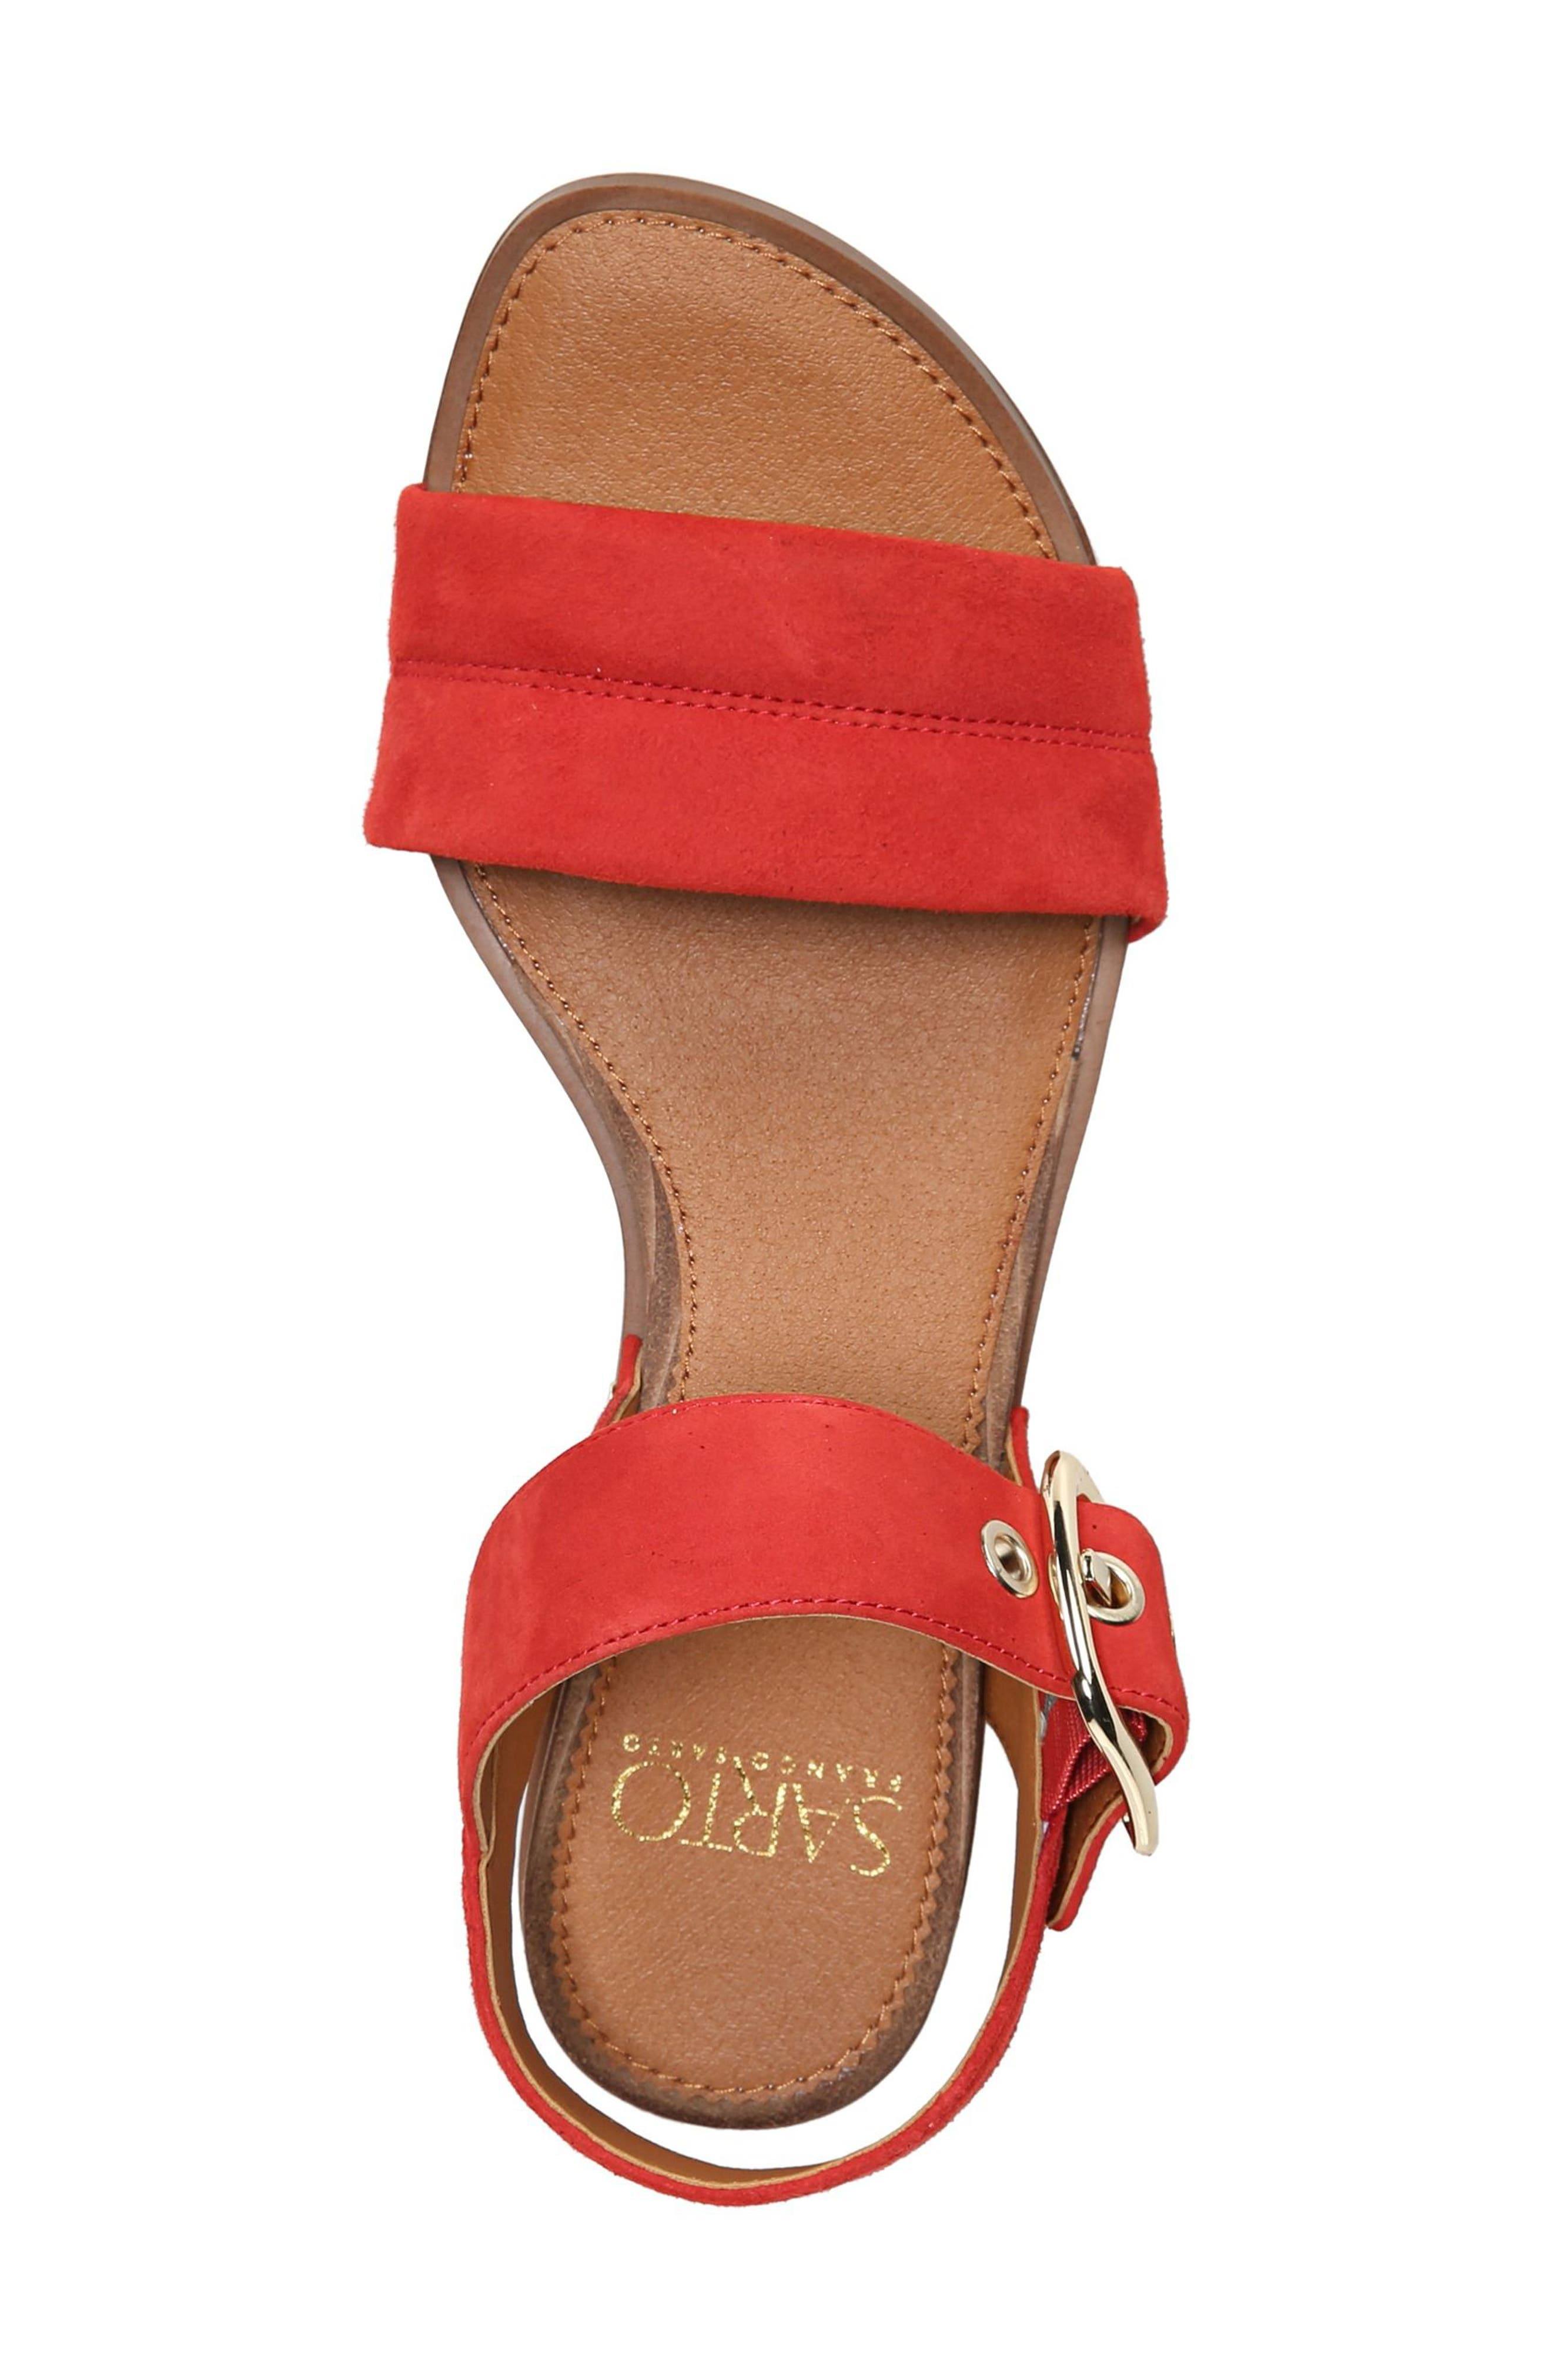 Patterson Low Wedge Sandal,                             Alternate thumbnail 5, color,                             Pop Red Suede